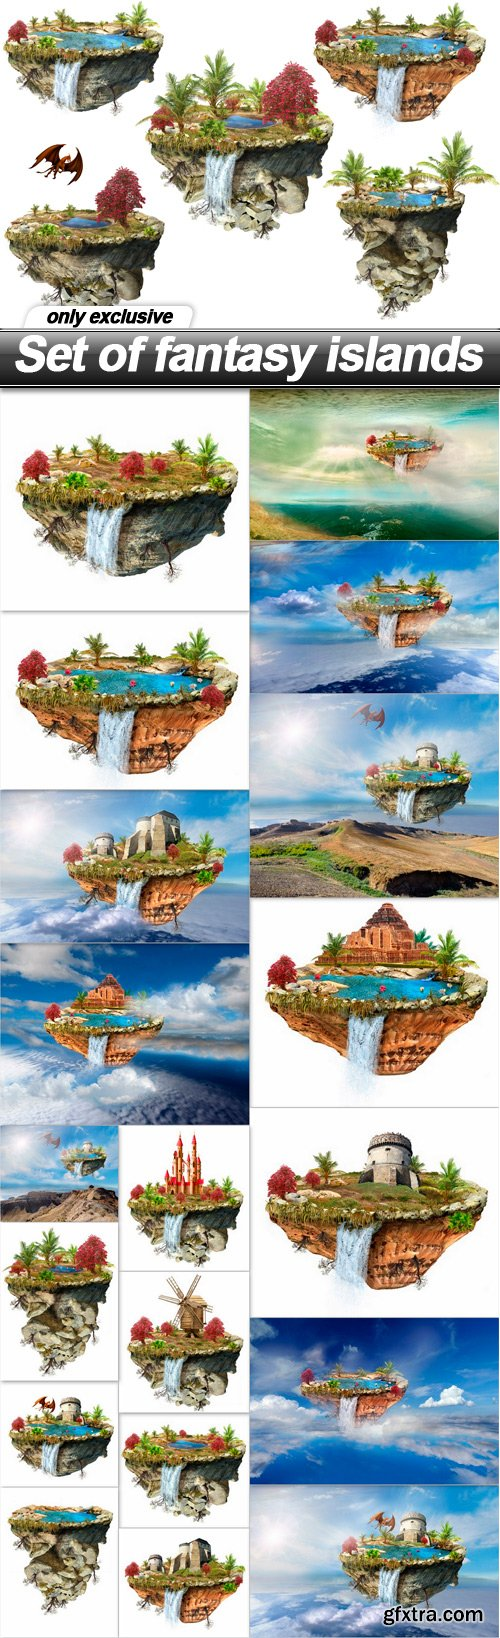 Set of fantasy islands - 20 UHQ JPEG